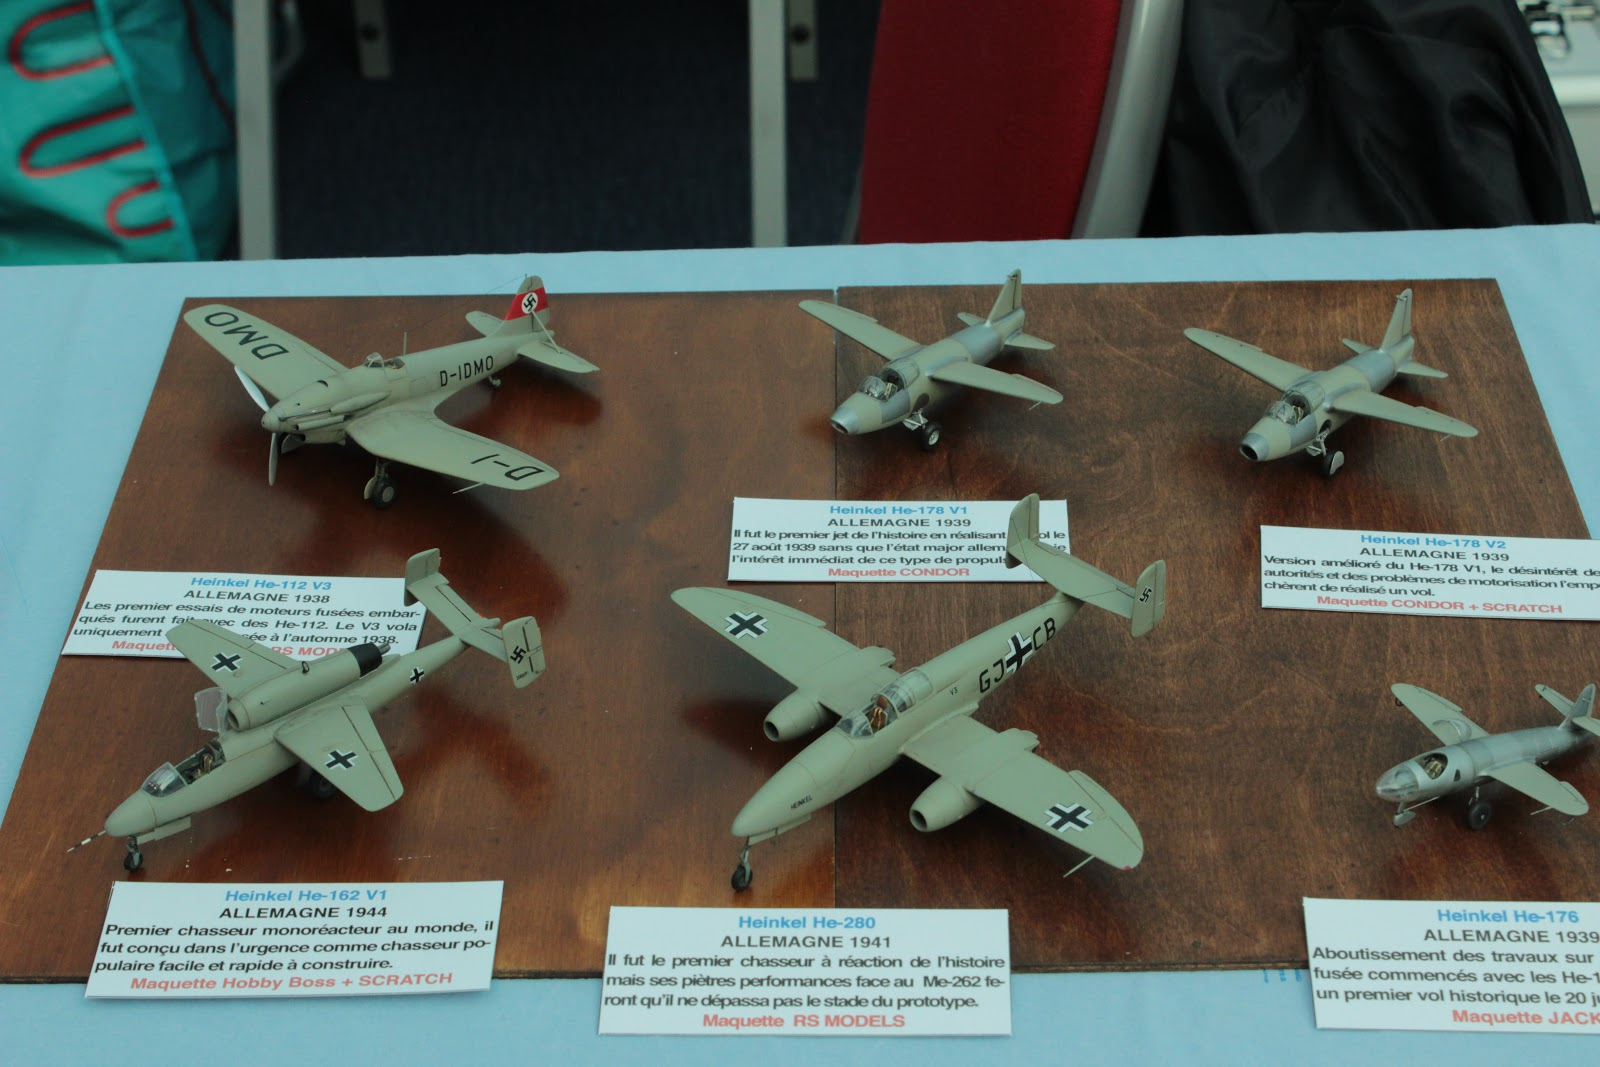 Maquettexpo 2017 14-15 octobre Hyères - Page 4 IMG_4385